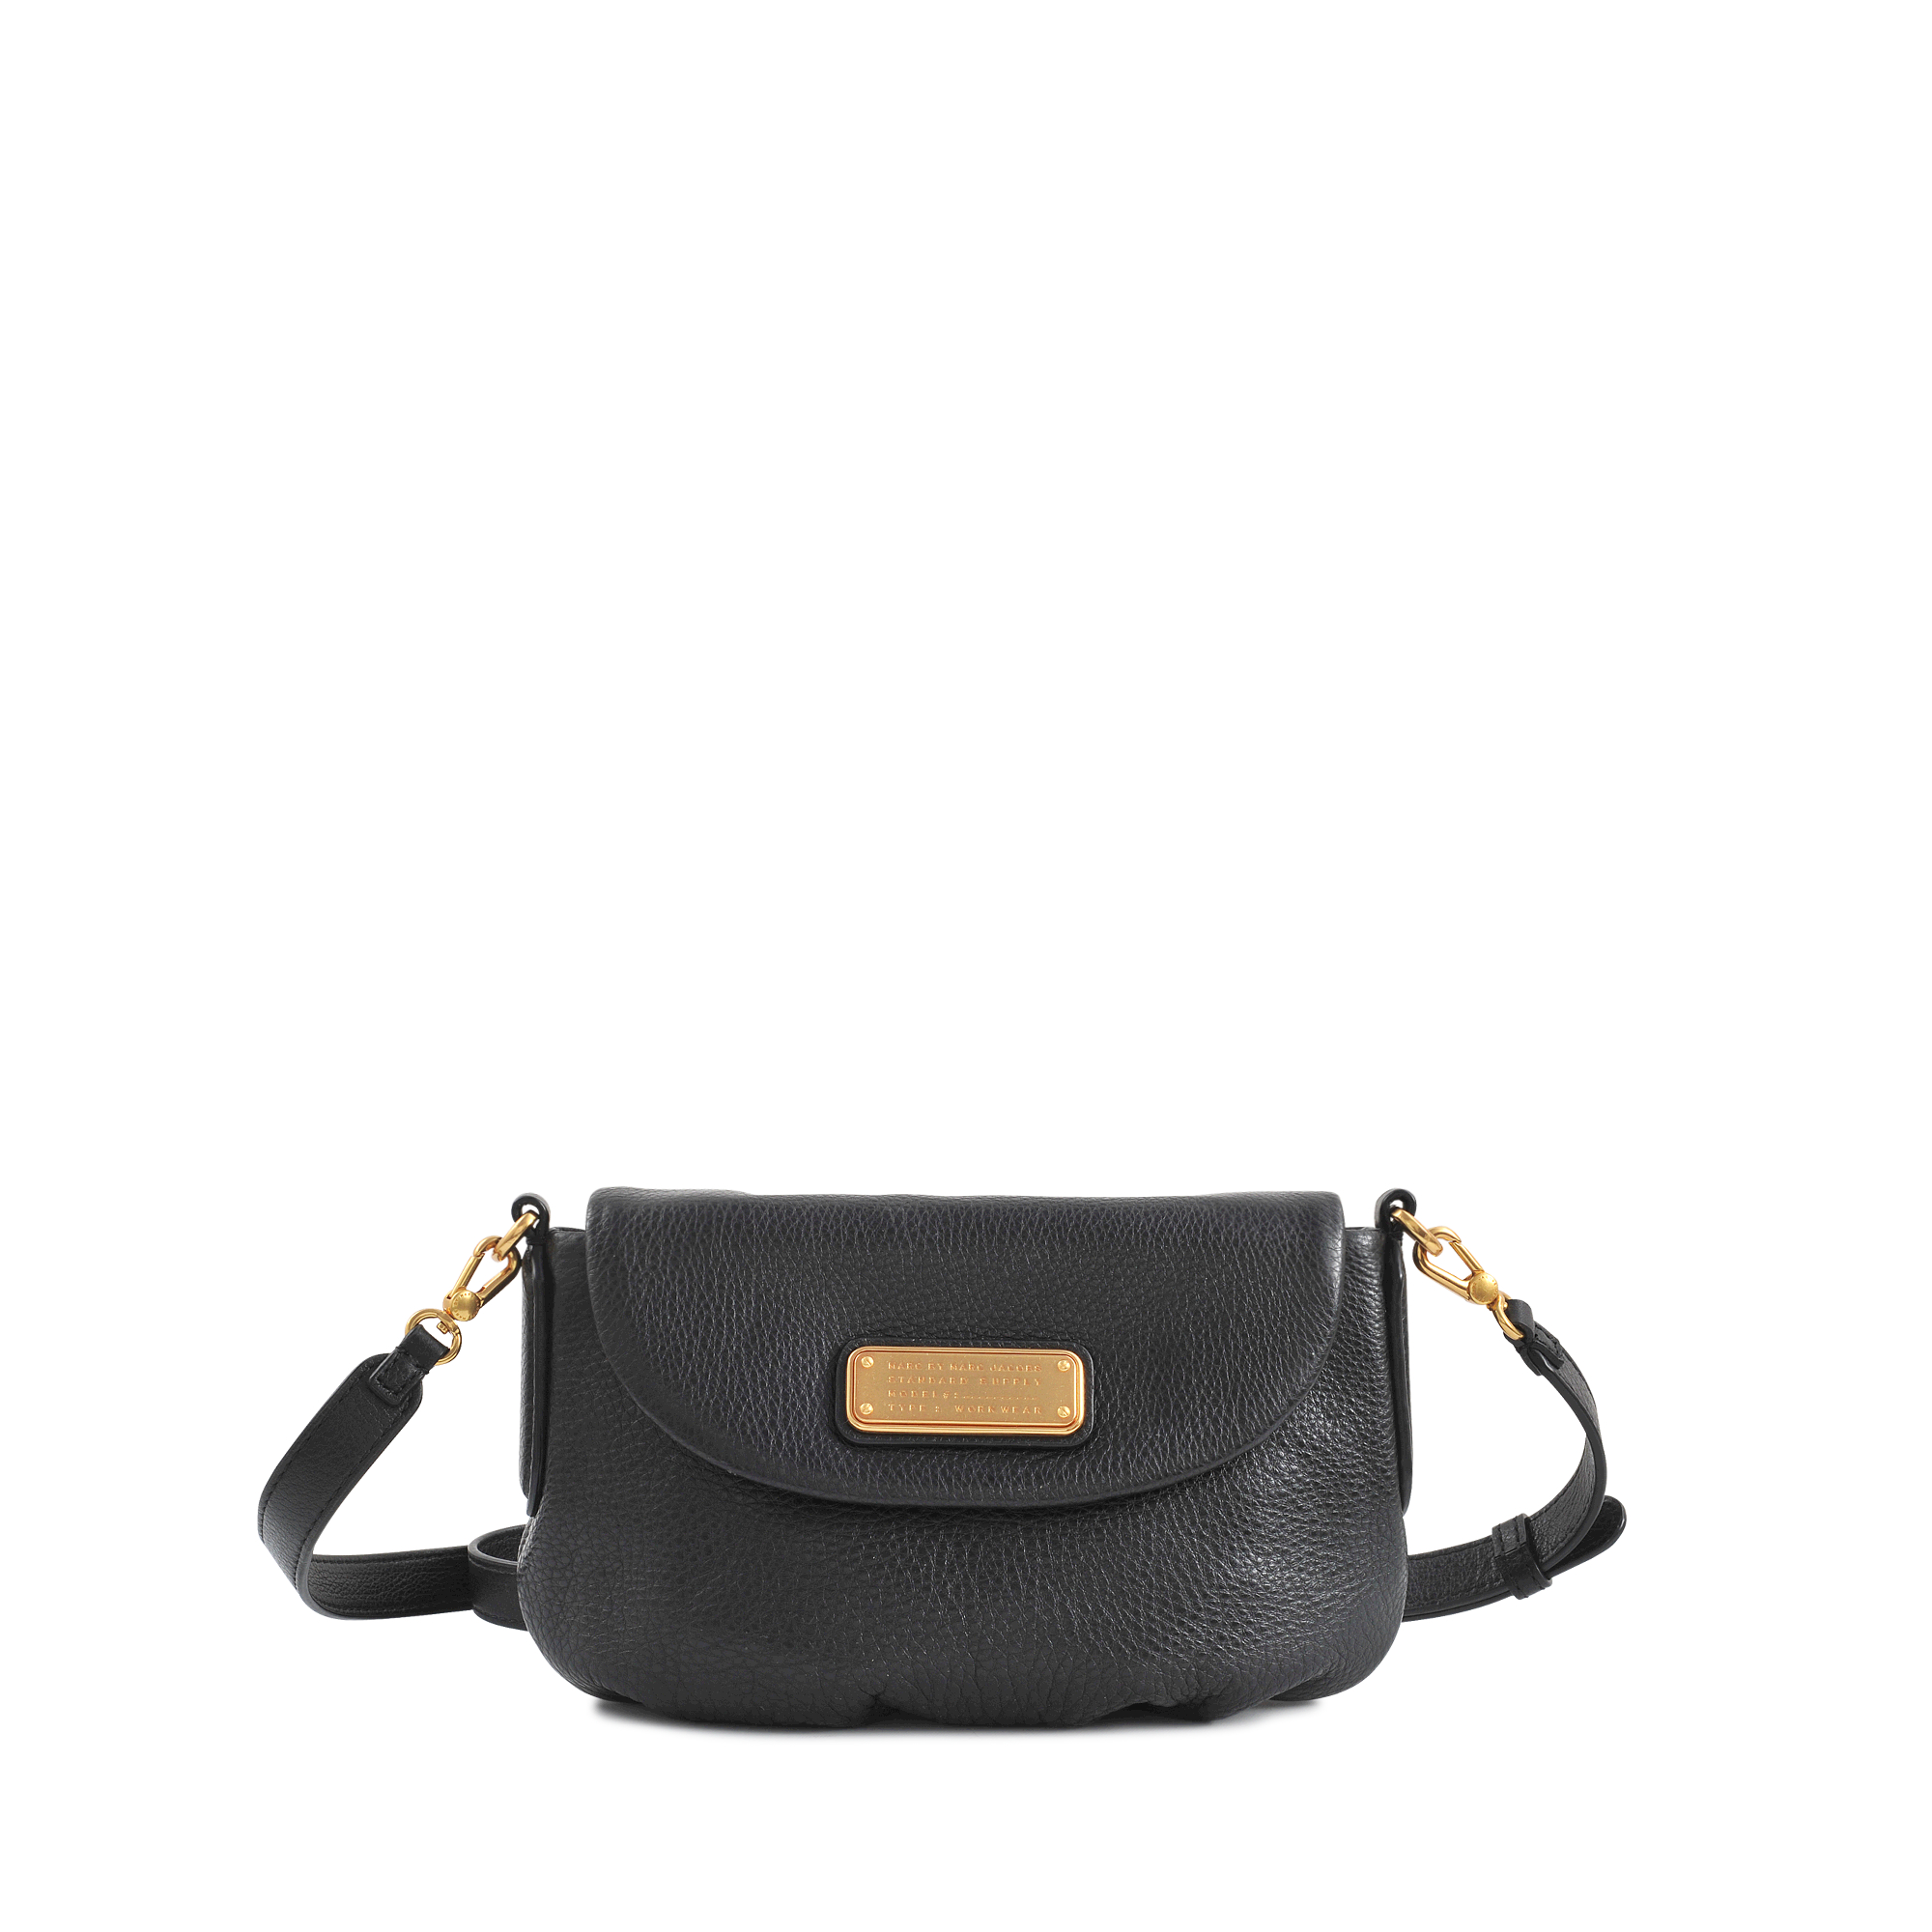 4547e28d79edc Marc By Marc Jacobs Small Percy New Q Flap Bag in Black - Lyst